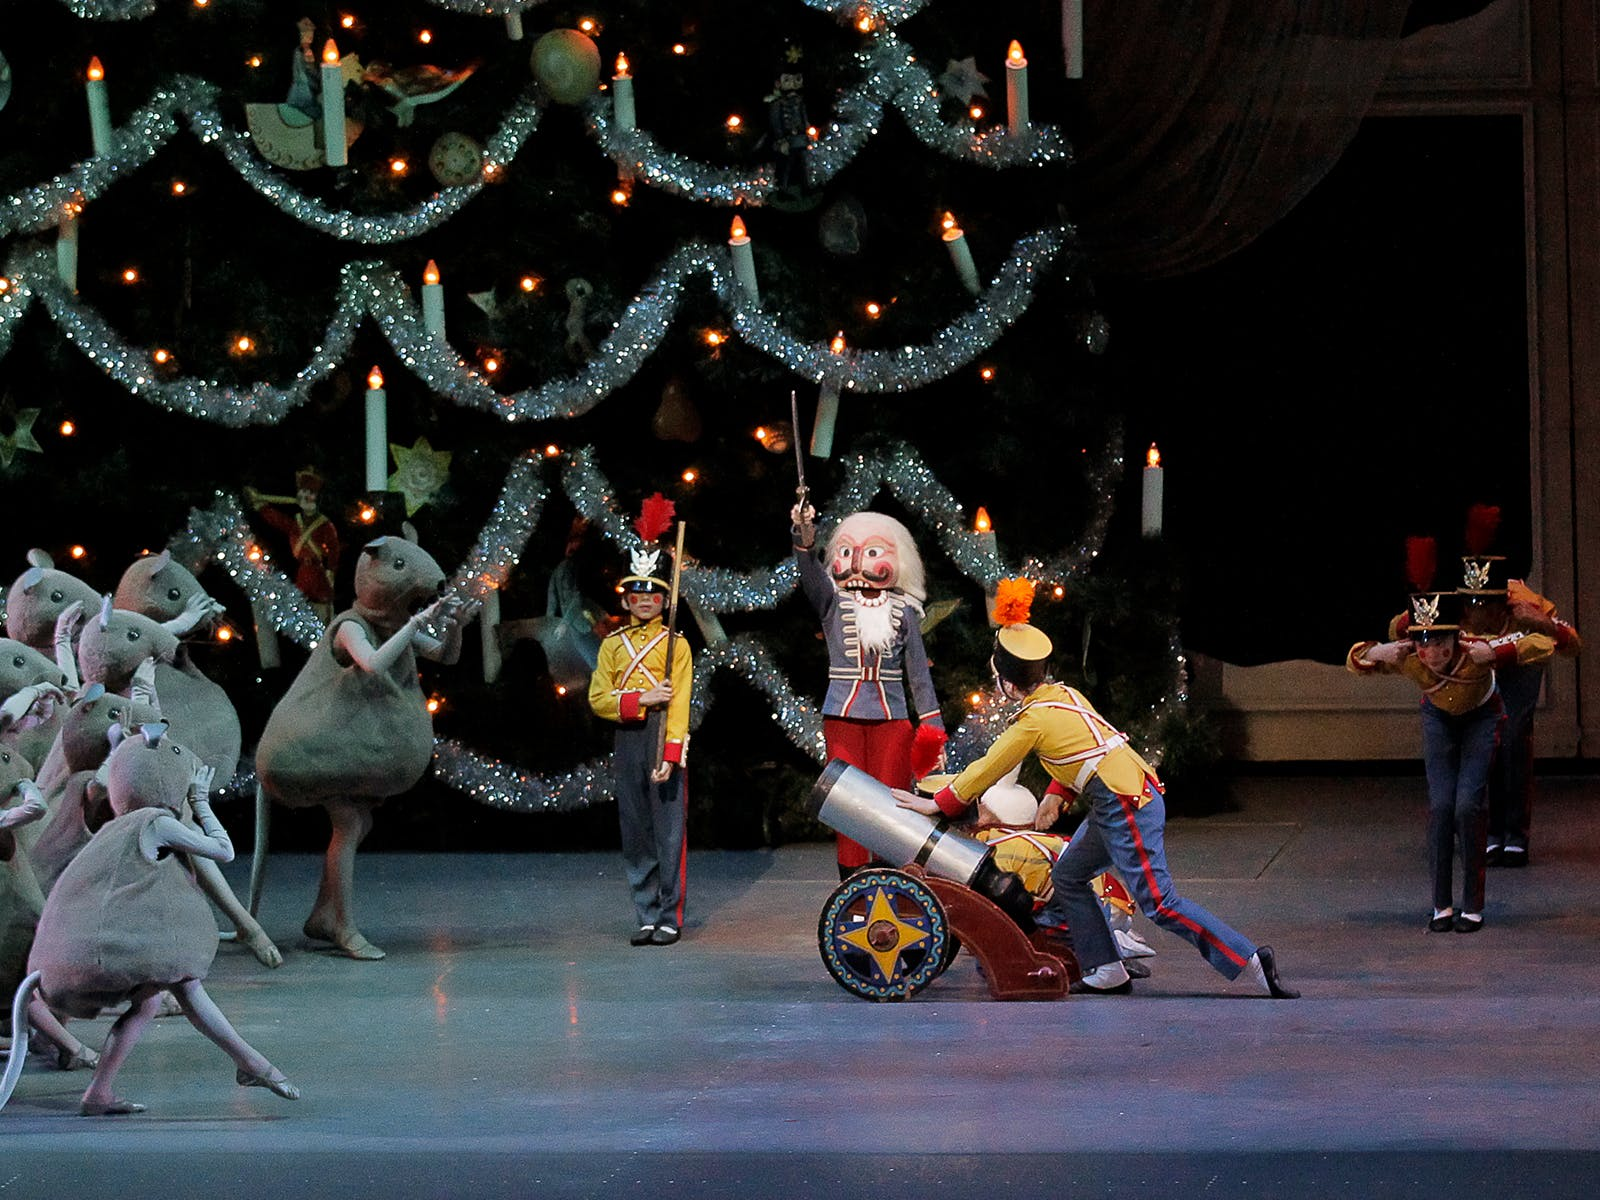 Get Tickets to NYC's Hottest Holiday Shows with TodayTix